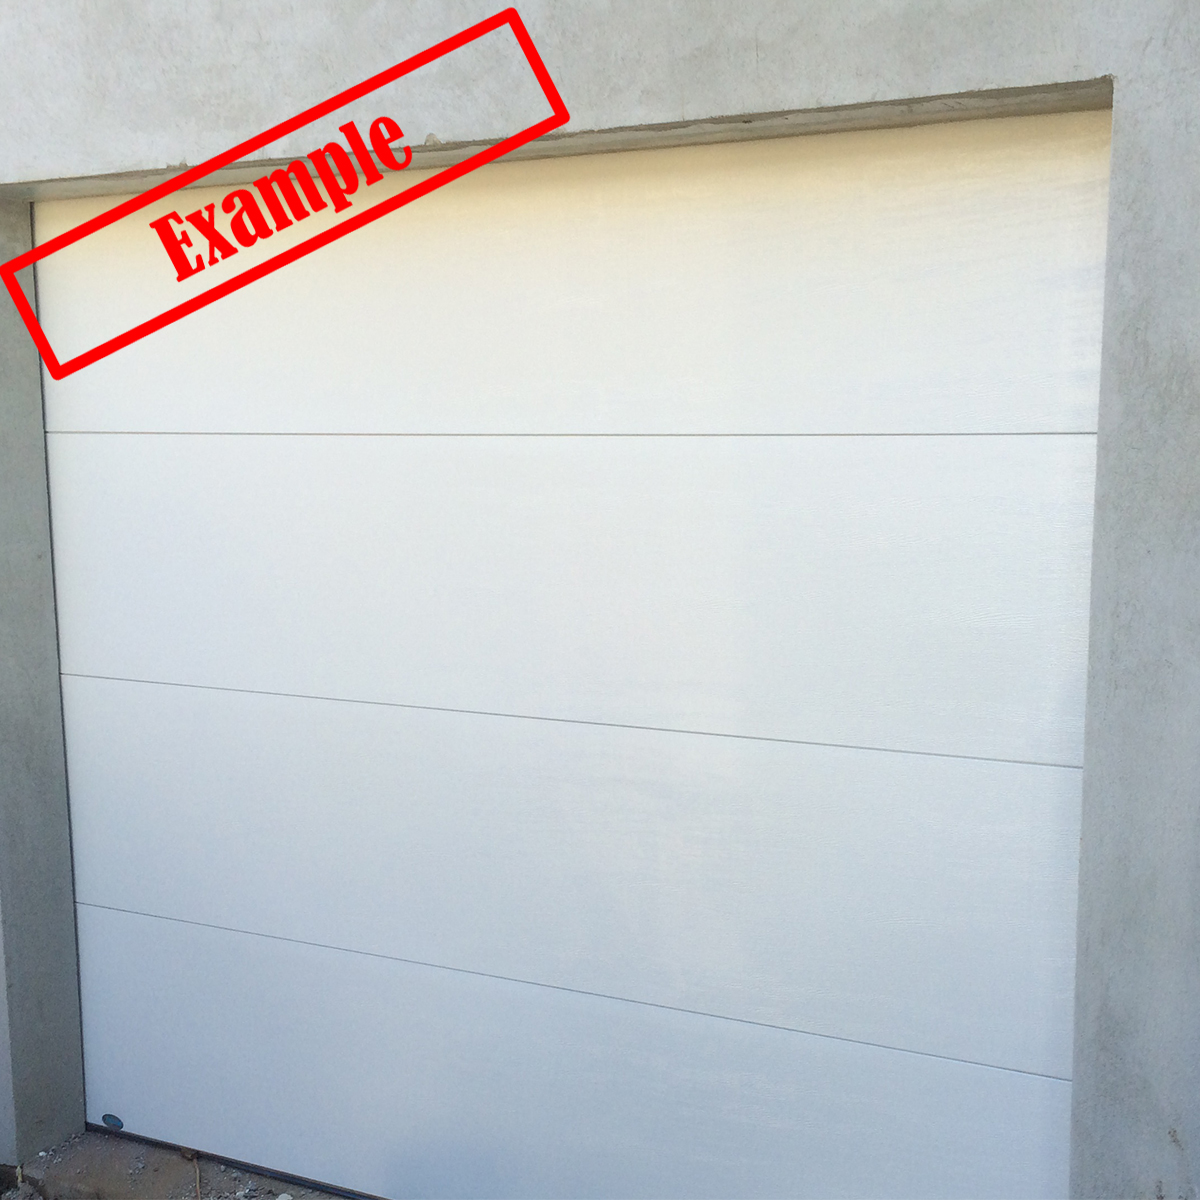 1200 #C70604  Doors ARA Insulated Sectional/Panel Garage Door – Surfmist Color pic Garage Doors Colors 37511200